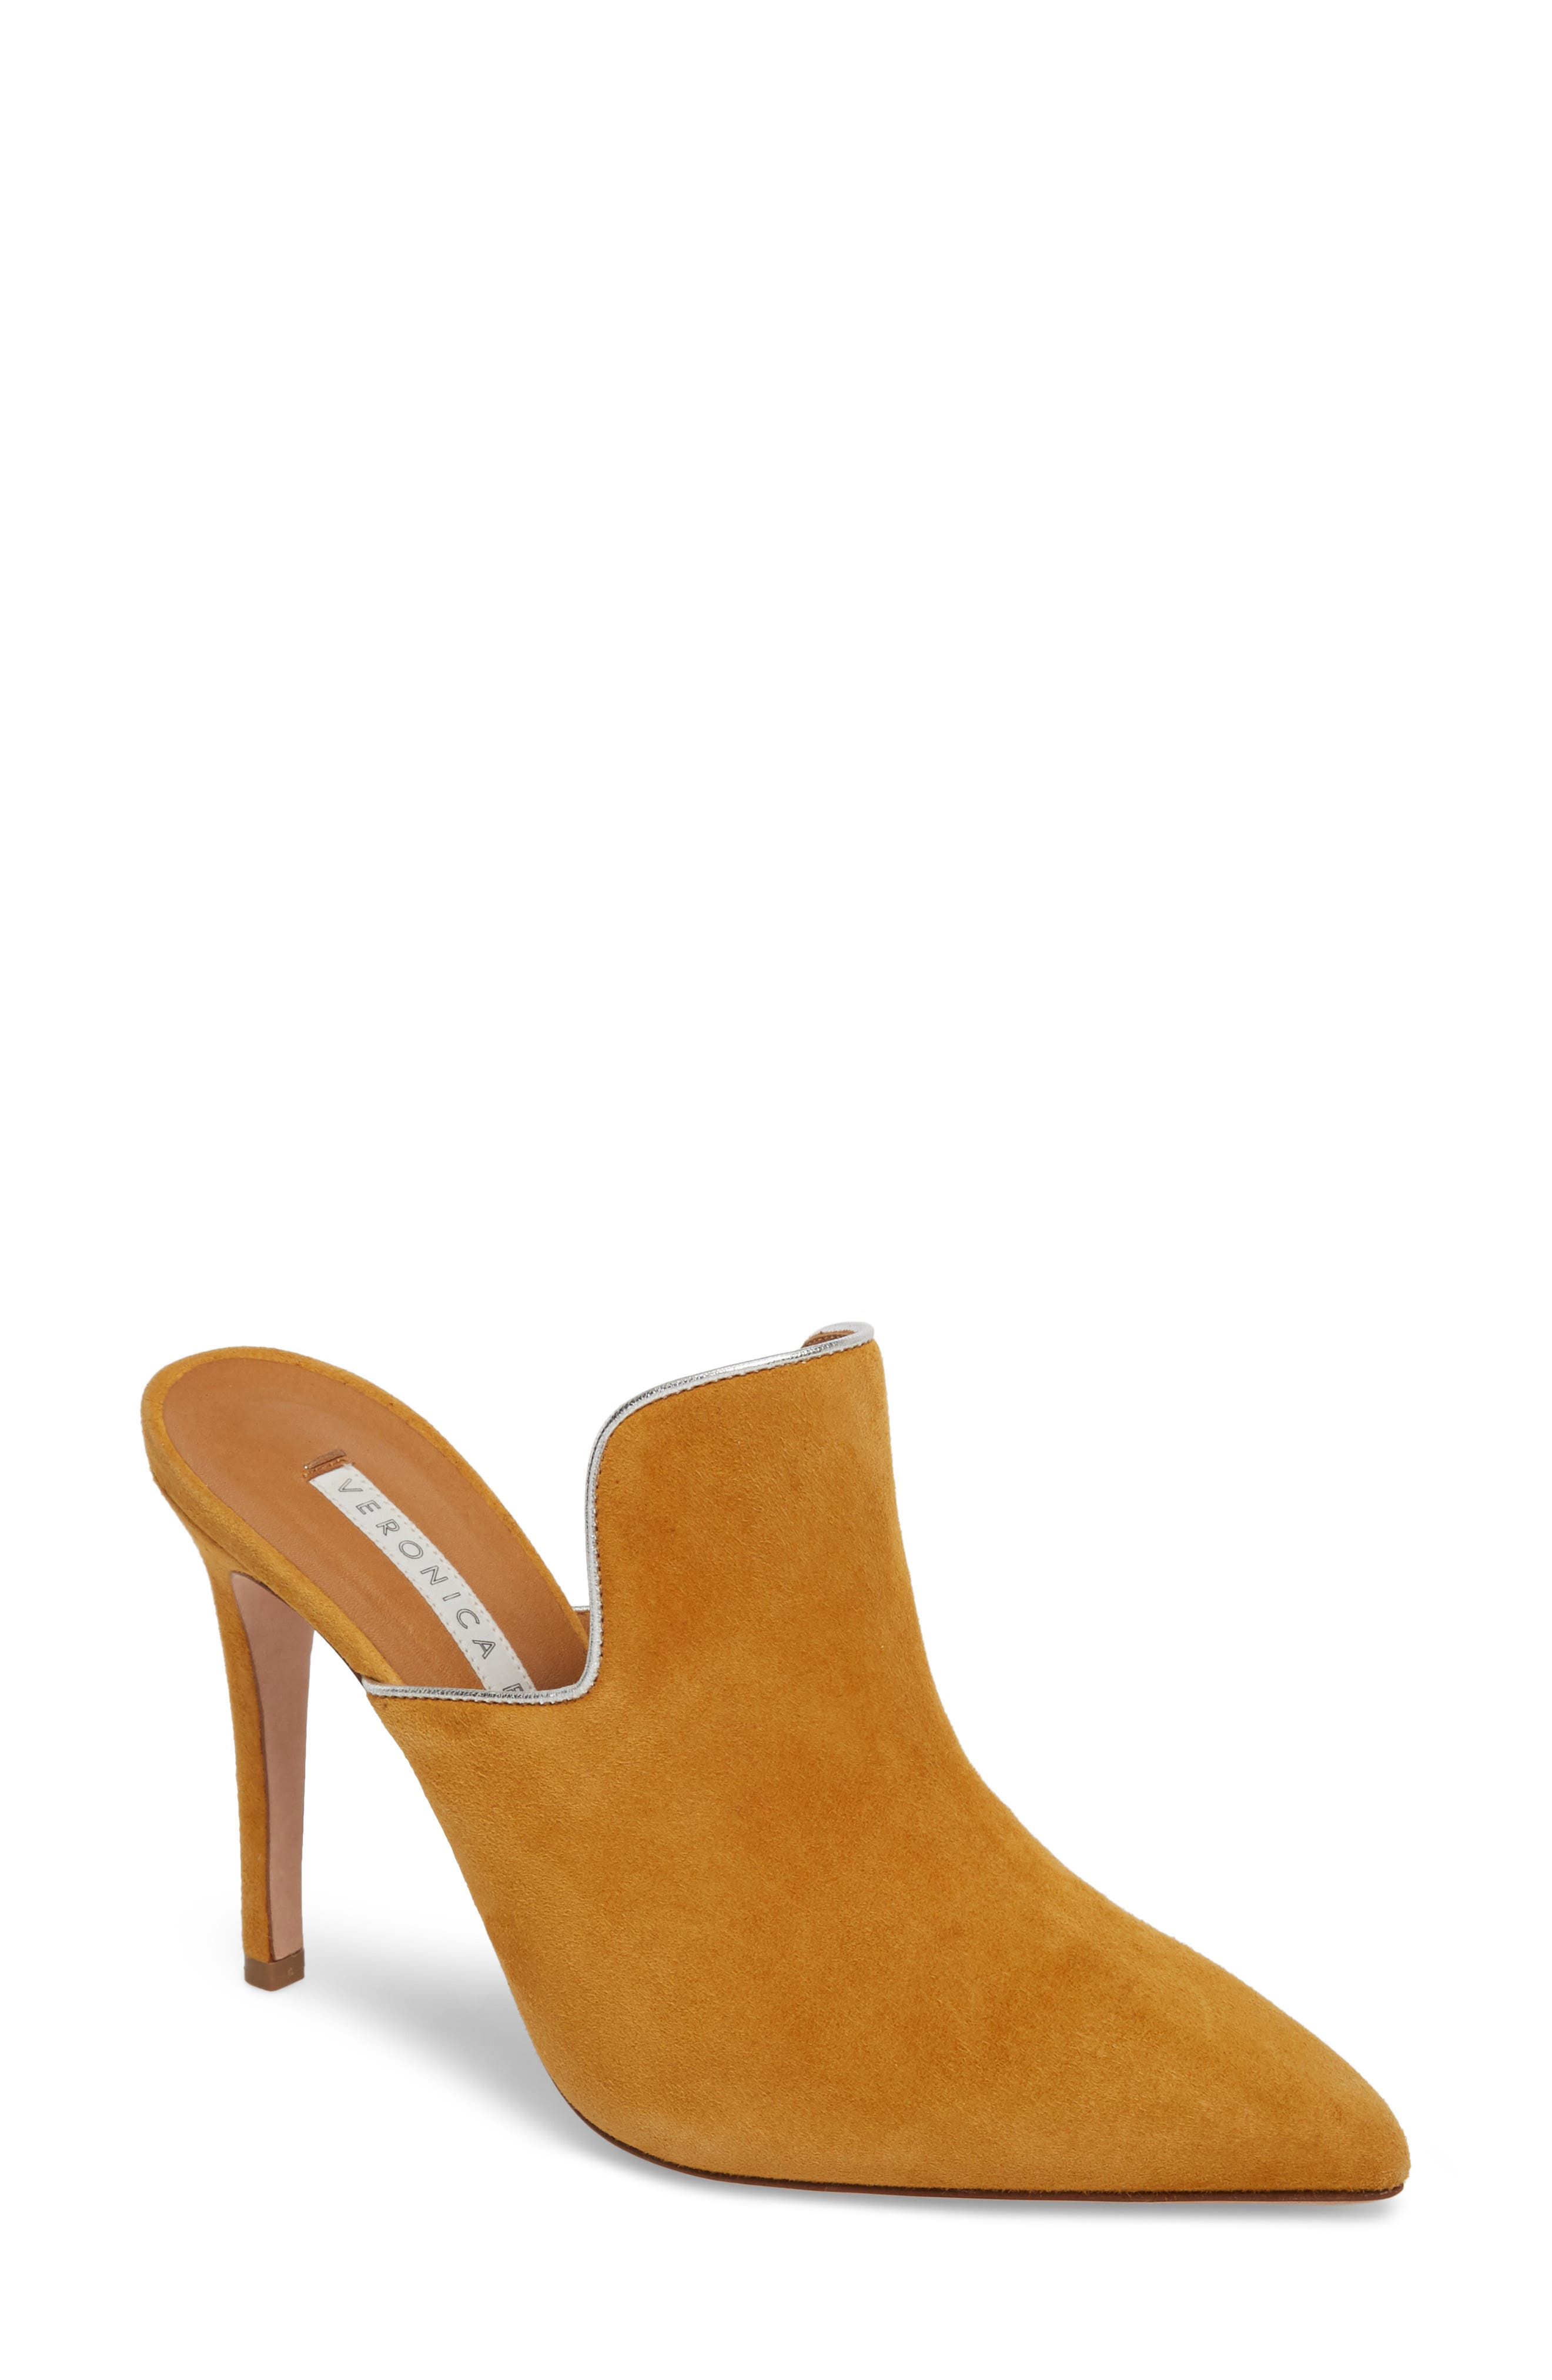 Penn Pointy Toe Mule,                         Main,                         color, MARIGOLD/ SILVER